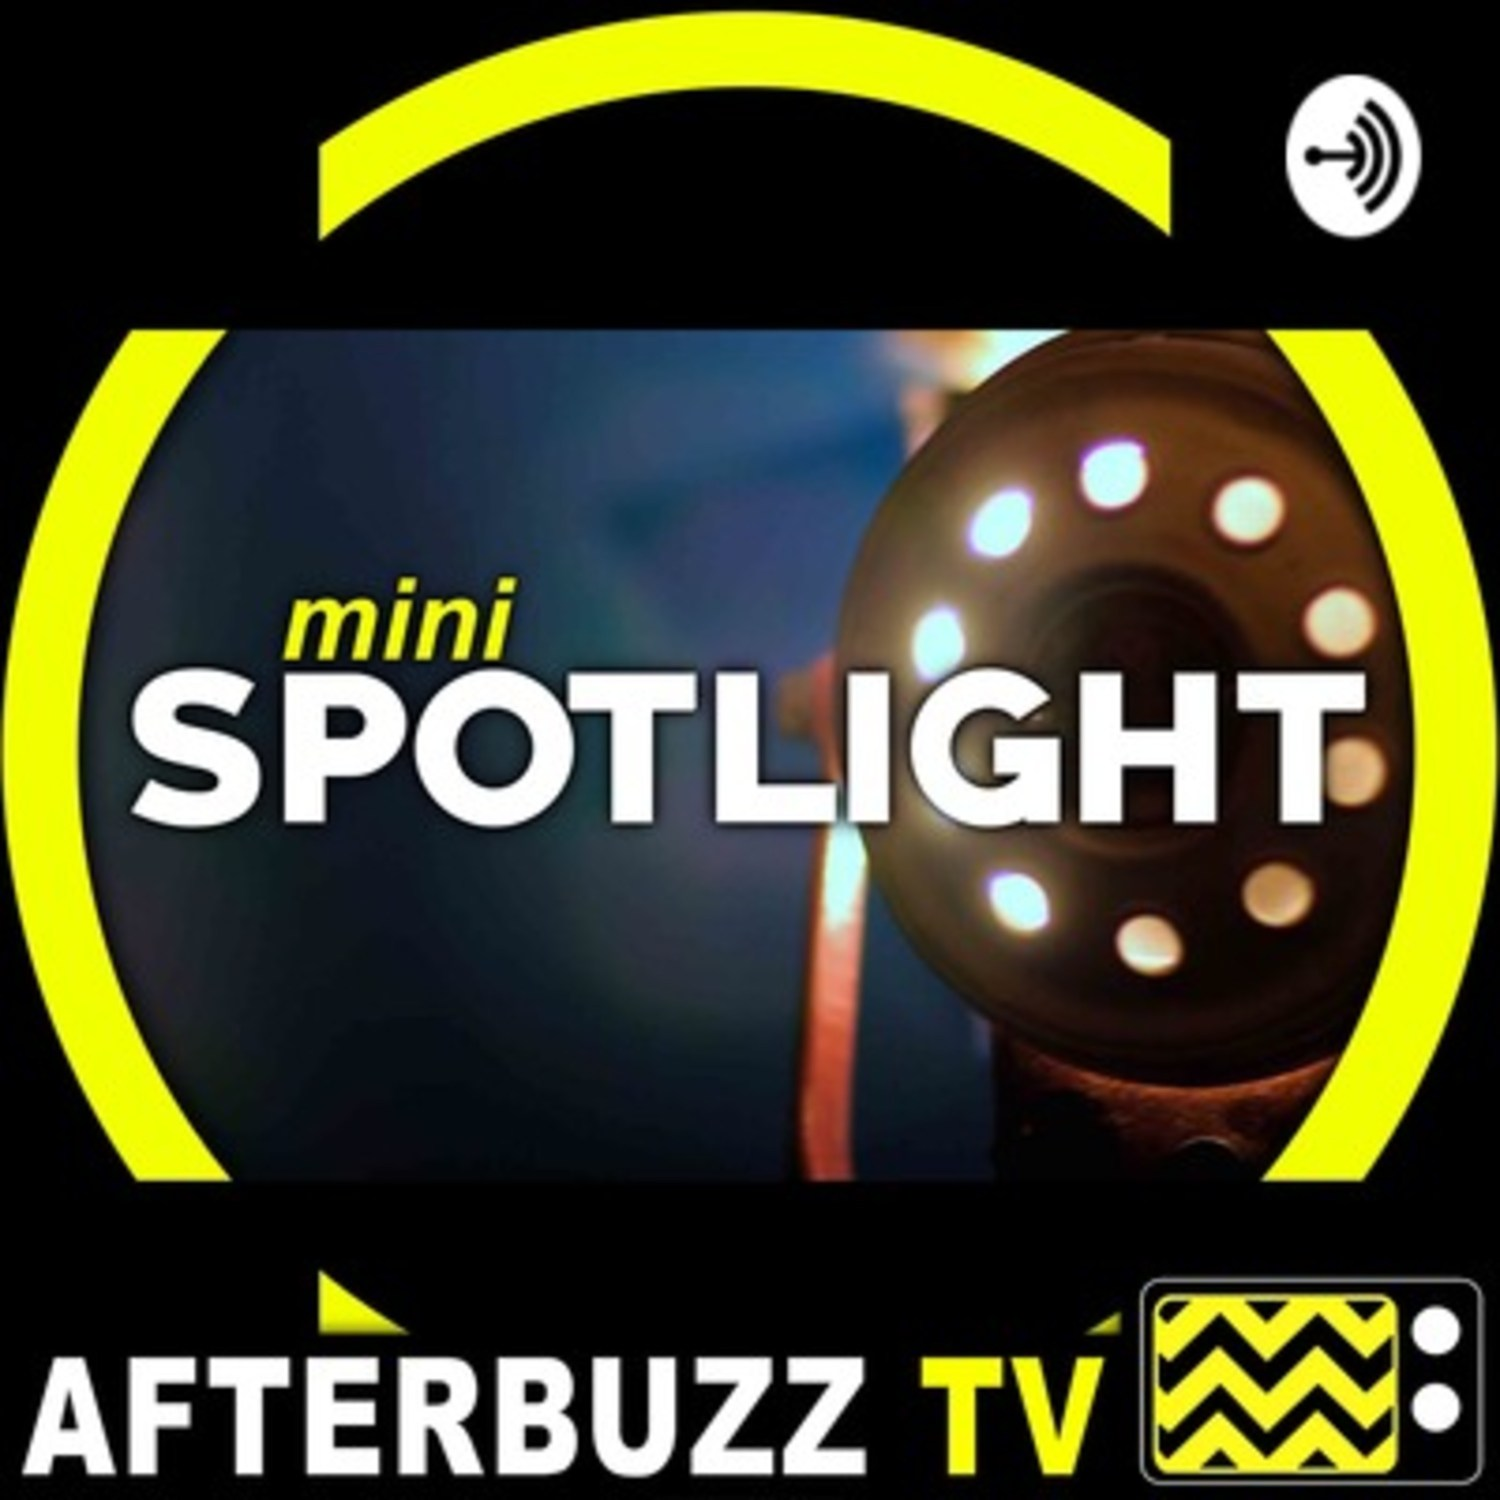 Mini Spotlights - AfterBuzz TV